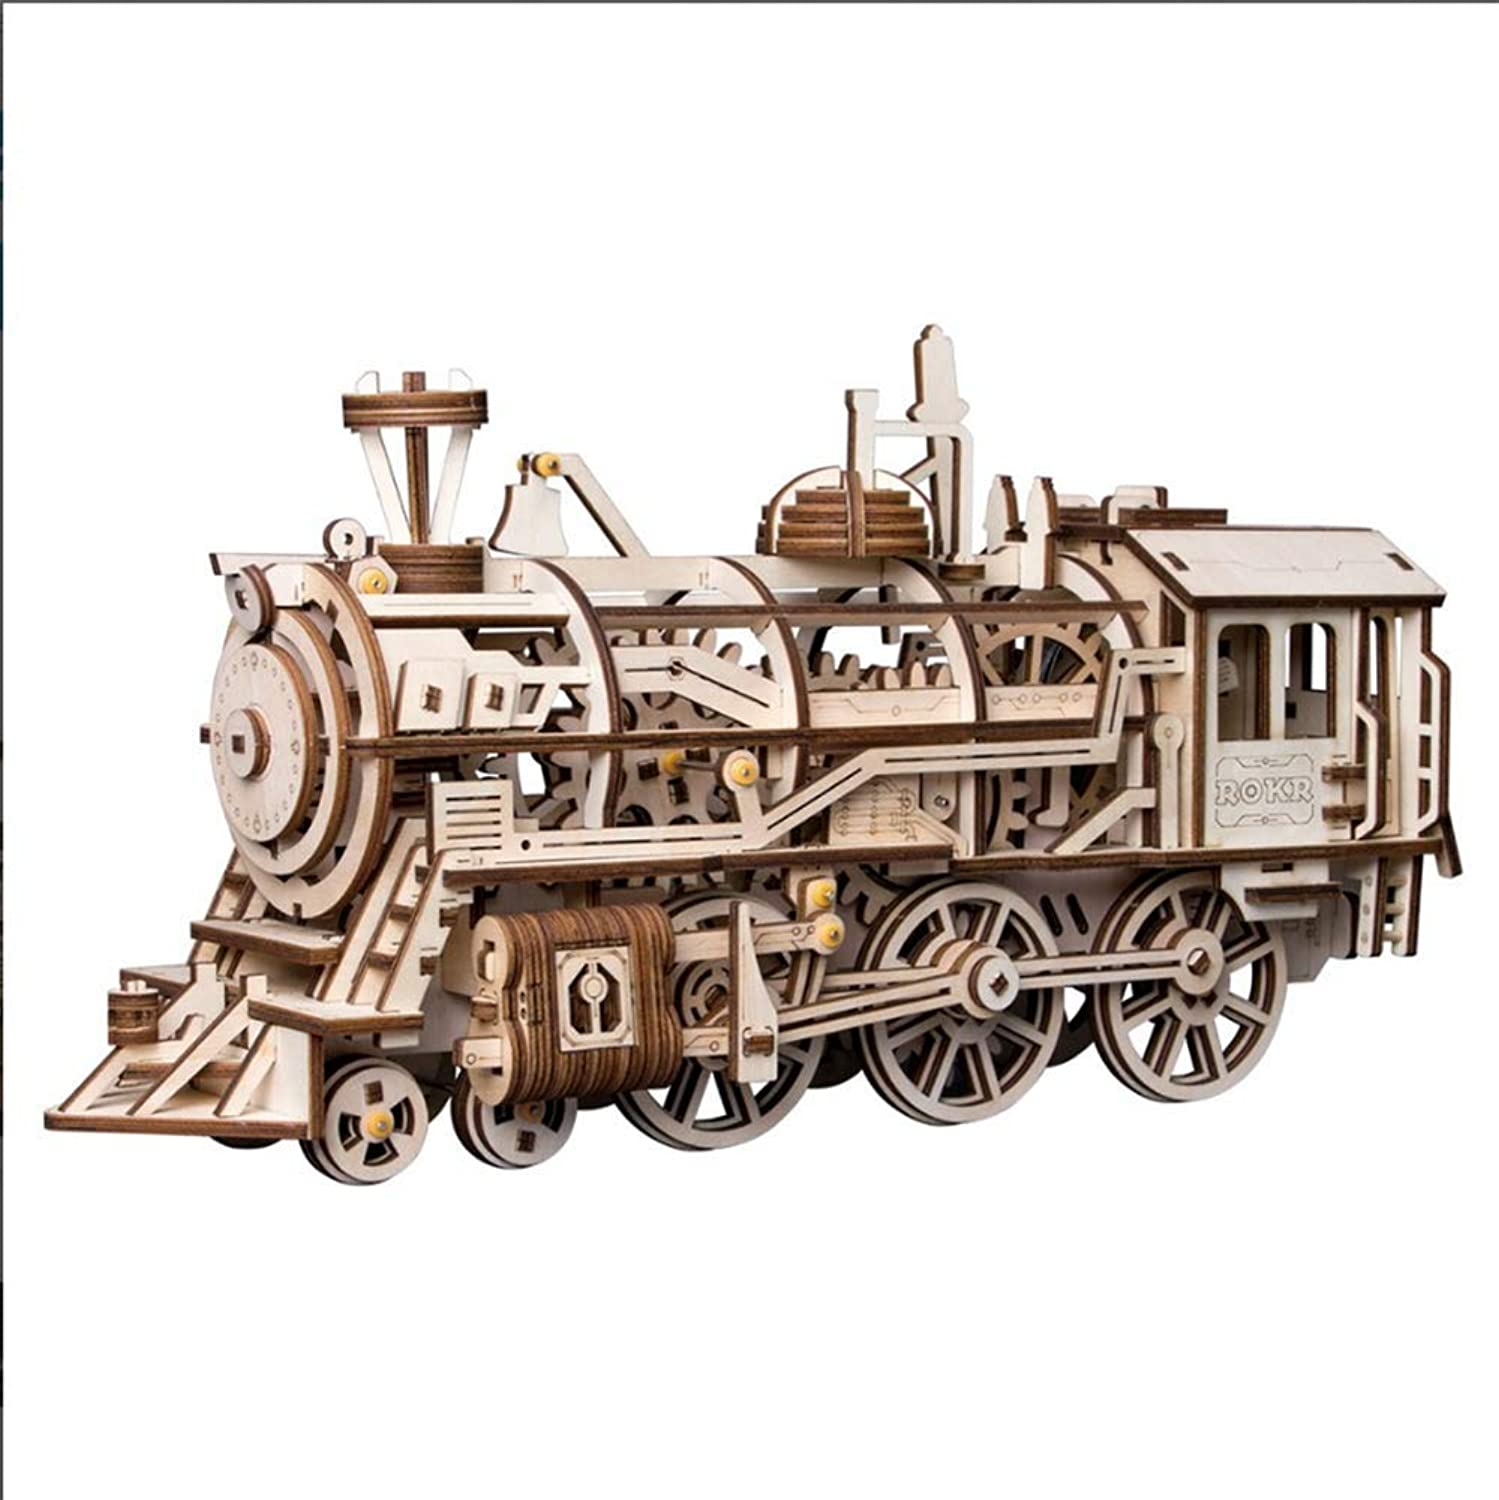 ZLD 3D Puzzle Train Model, Toys, Wooden Crafts, Clockwork Power, Wooden Puzzles, Handmade Home Gifts, Wooden Gears, Decorations